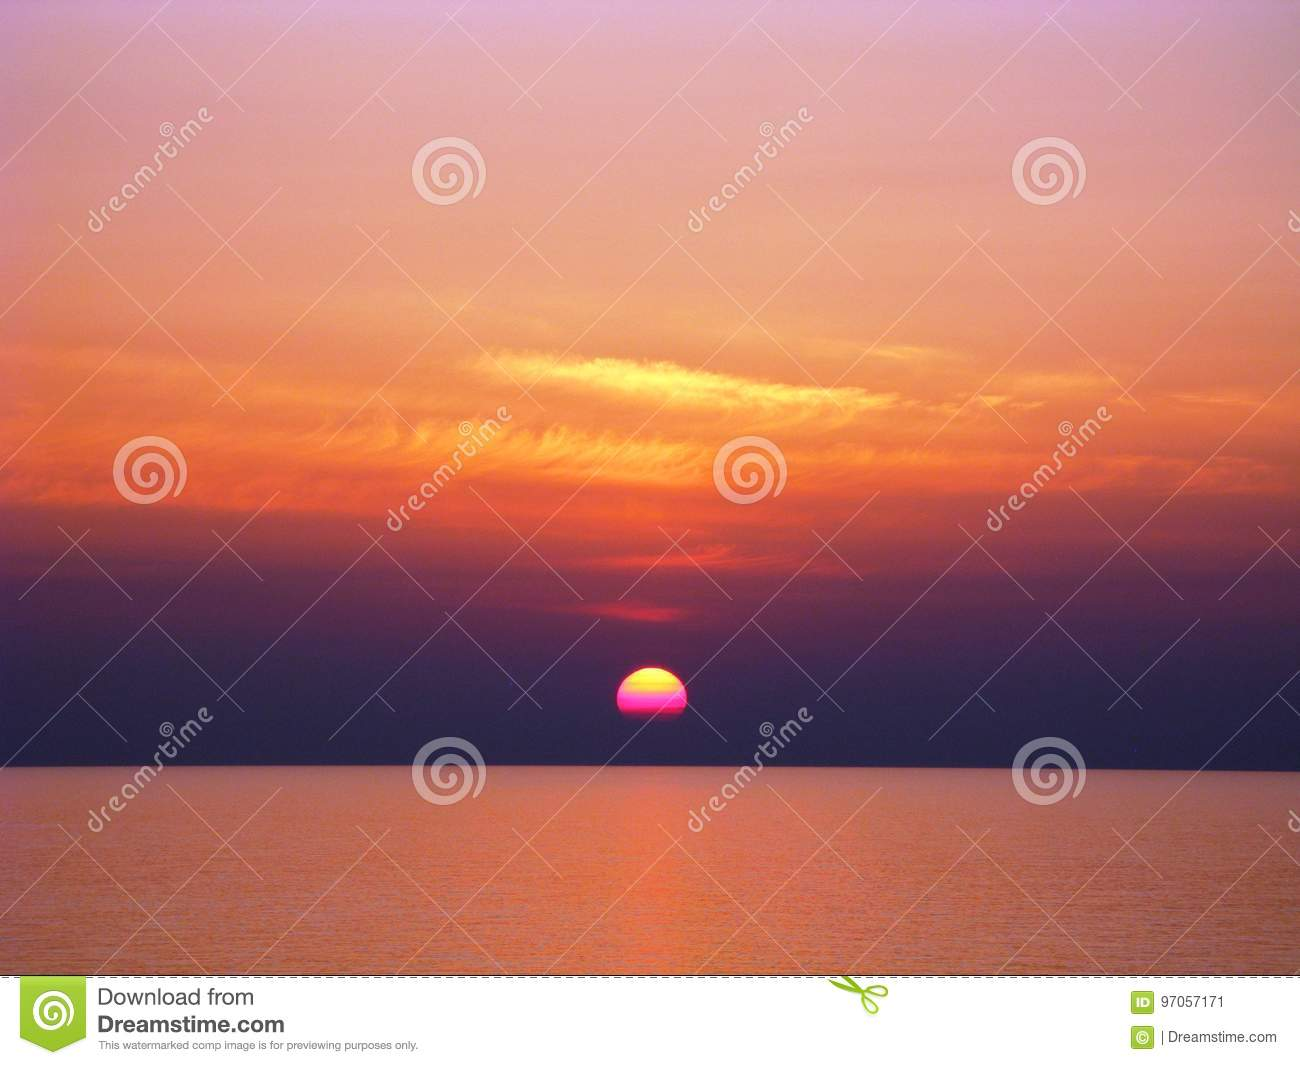 Pacific Ocean Sunset With Red And Orange Clouds Purple And Yellow Sun Stock Image Image Of Orange Shading 97057171